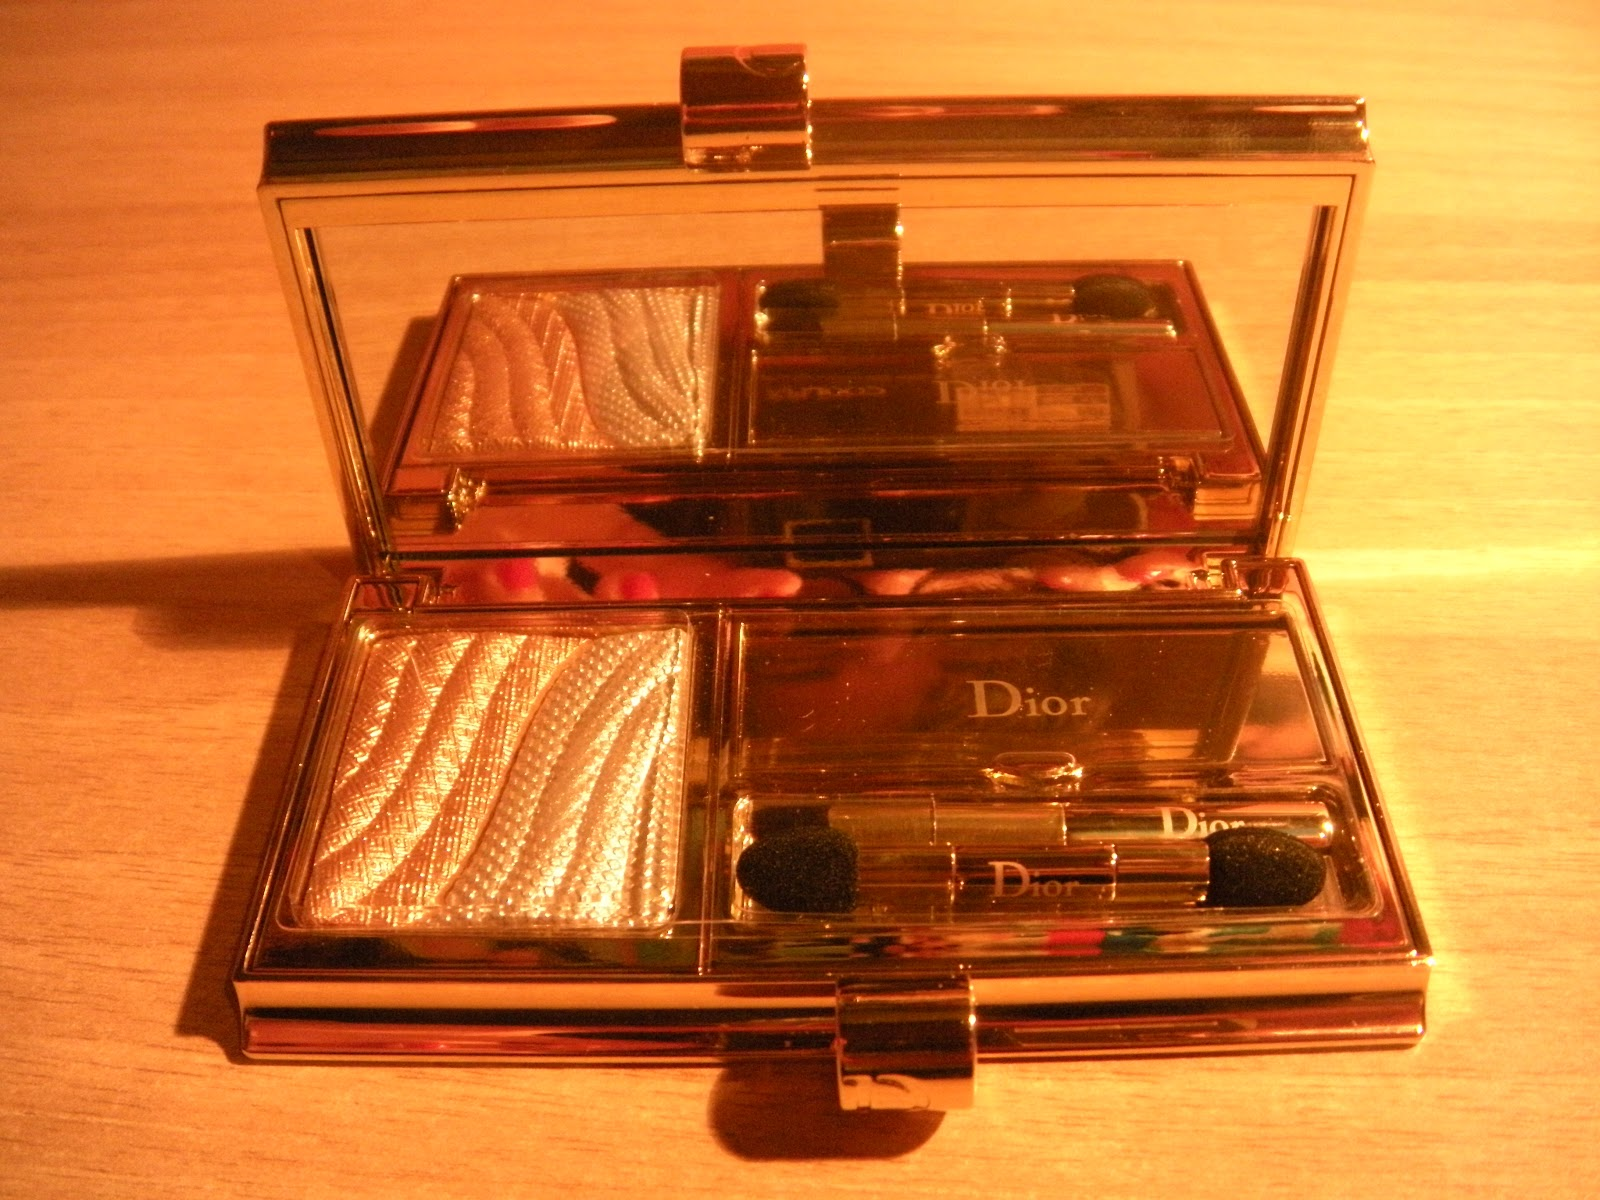 Carnet de maquillage dior grand bal si aprano le danze wordpress - Riflessi in uno specchio scuro ...